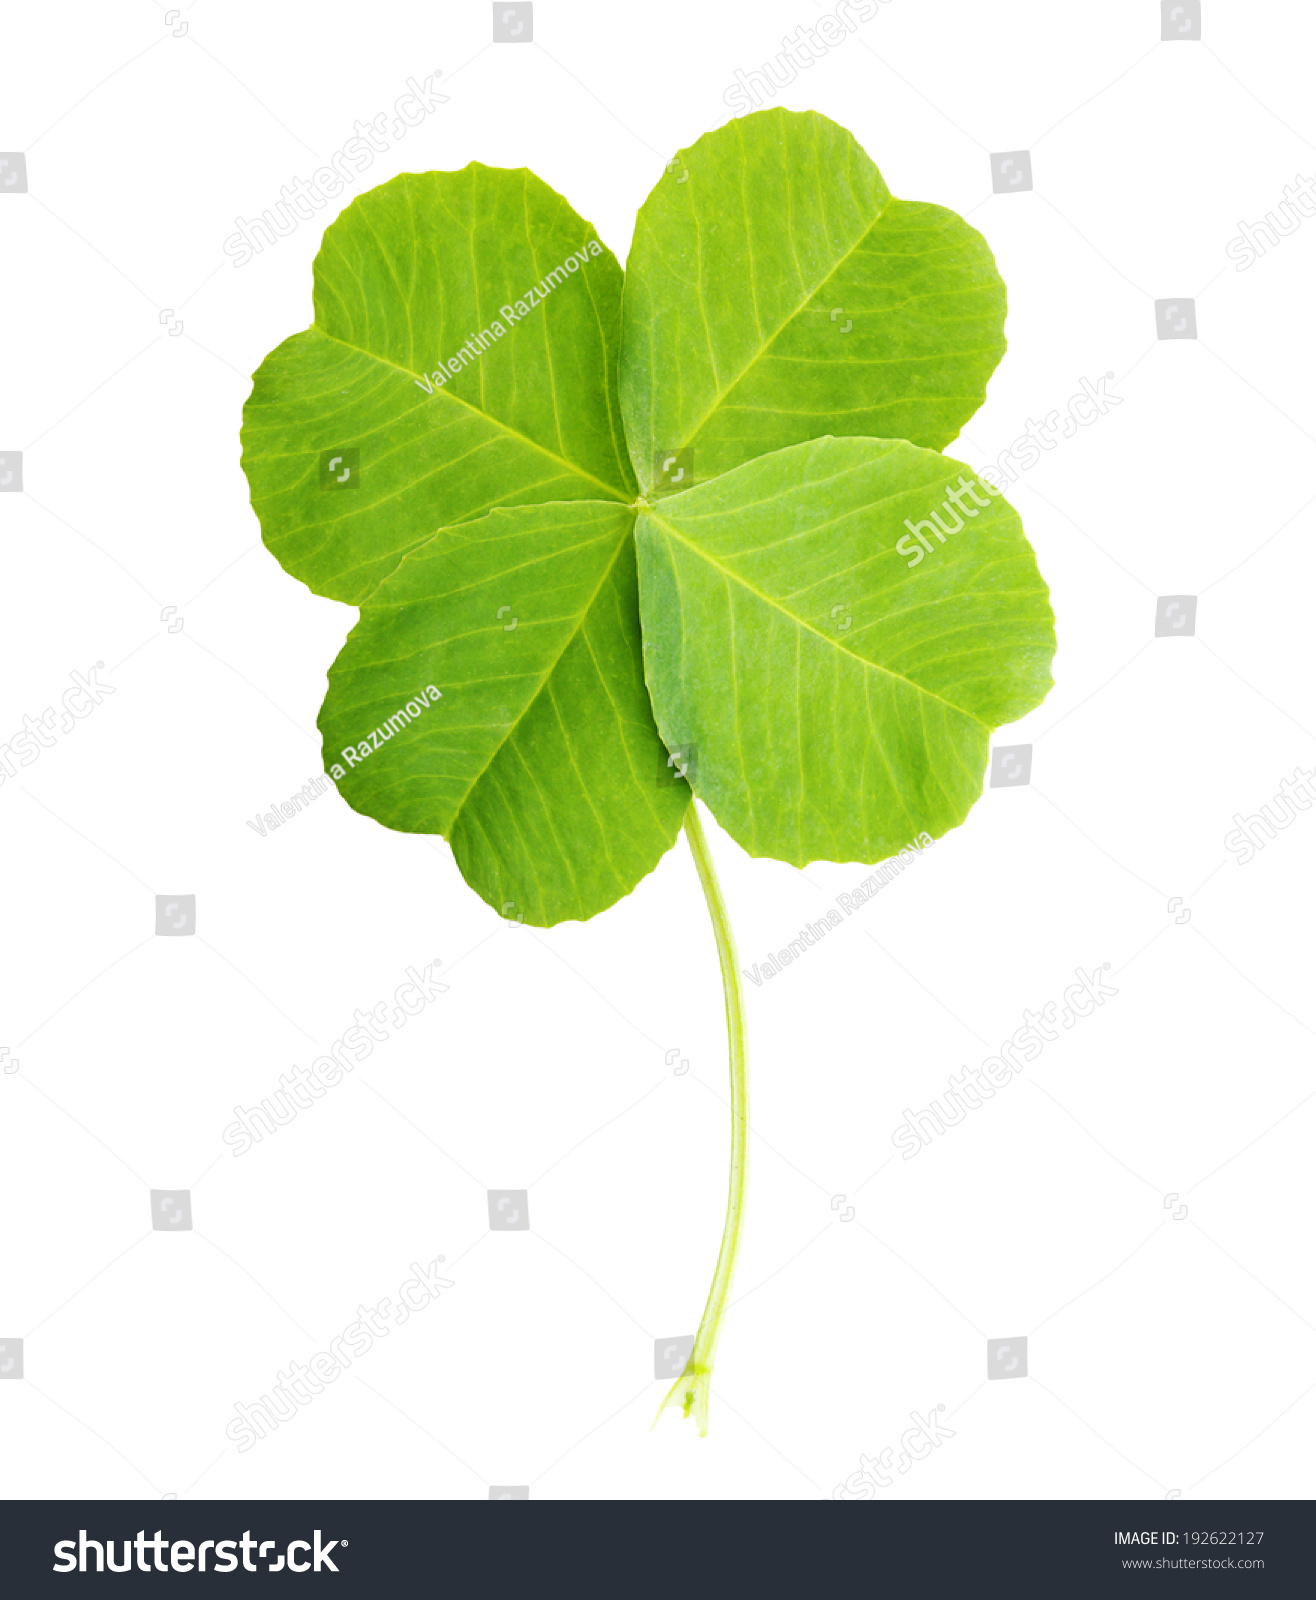 Green four-leaf clover leaf isolated on white background. #192622127